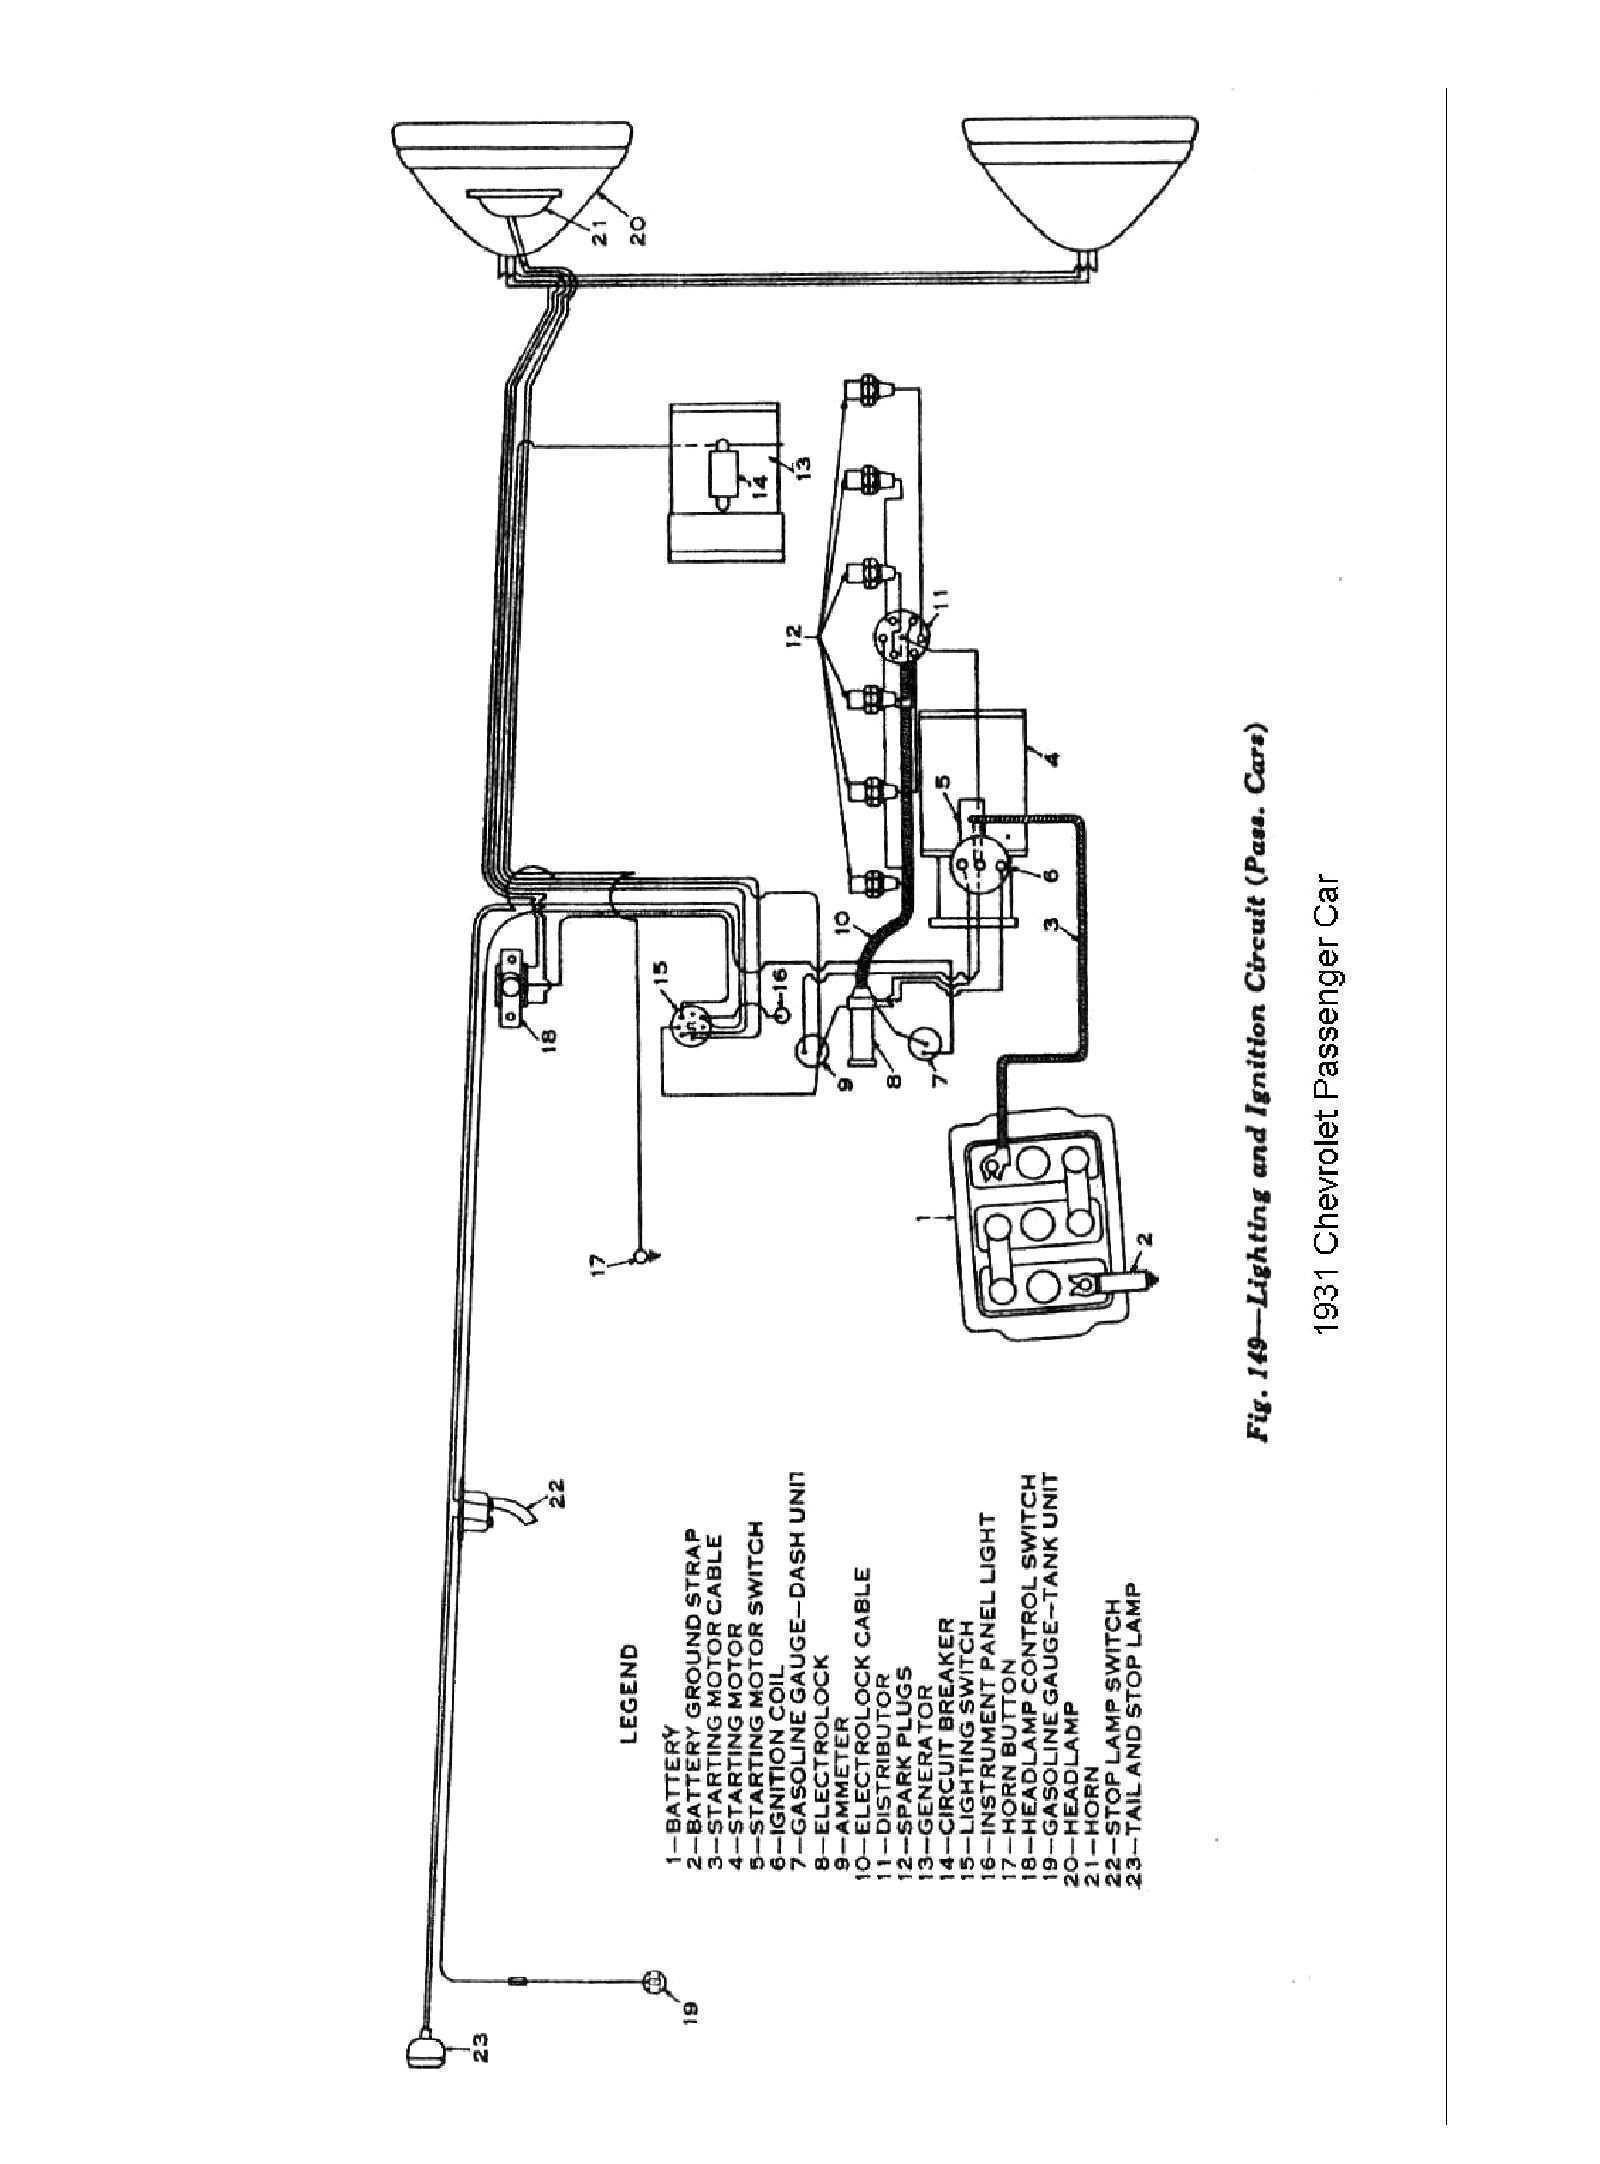 Wiring Diagram for Home Light Switch Valid 3 Way Wiring Diagram Inspirational Wiring Diagram Plug Switch